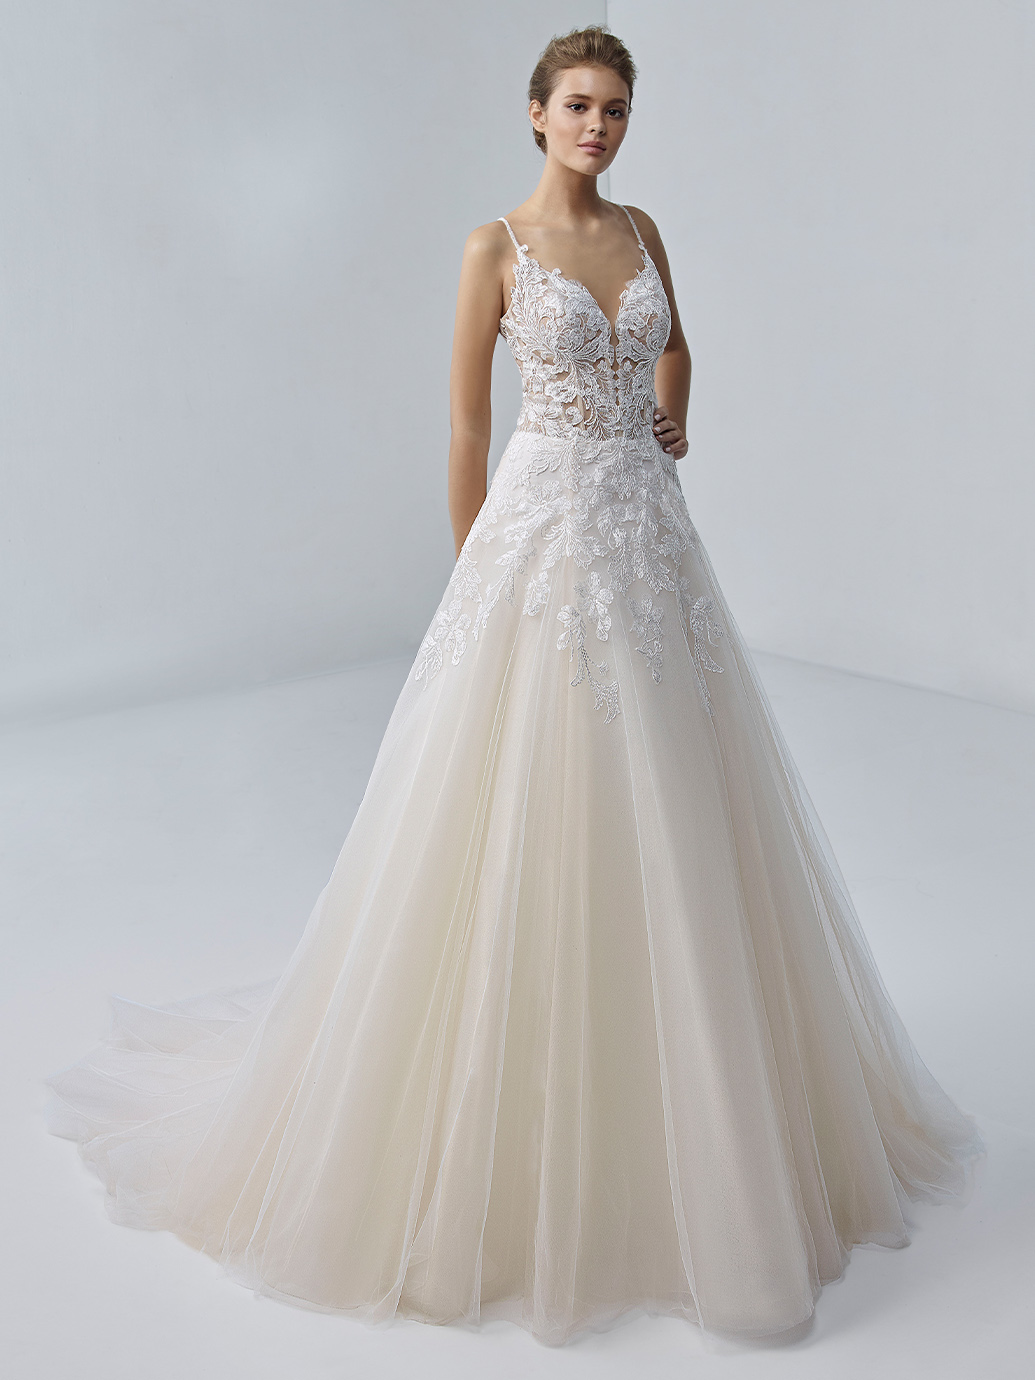 étoile-by-enzoani-2021-Dress-Finder-etiennette